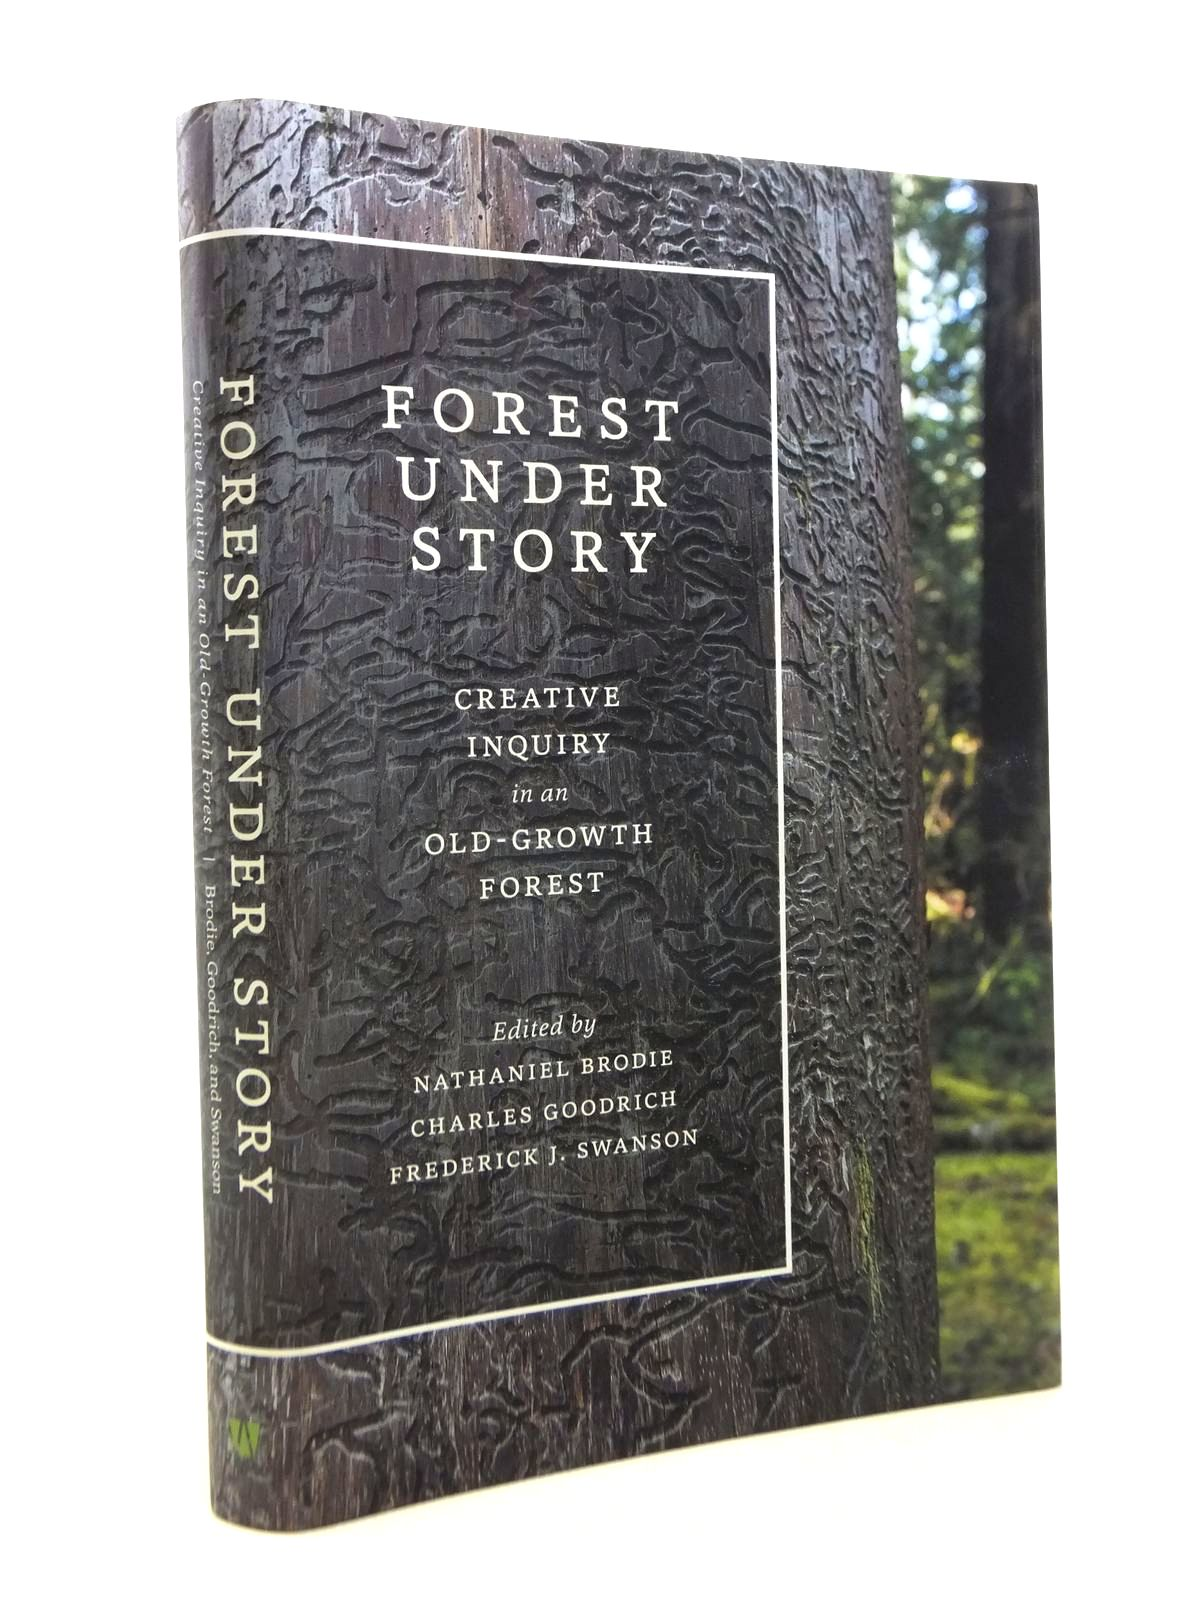 Photo of FOREST UNDER STORY: CREATIVE INQUIRY IN AN OLD-GROWTH FOREST written by Brodie, Nathaniel Goodrich, Charles Swanson, Frederick J. published by University of Washington Press (STOCK CODE: 1812308)  for sale by Stella & Rose's Books